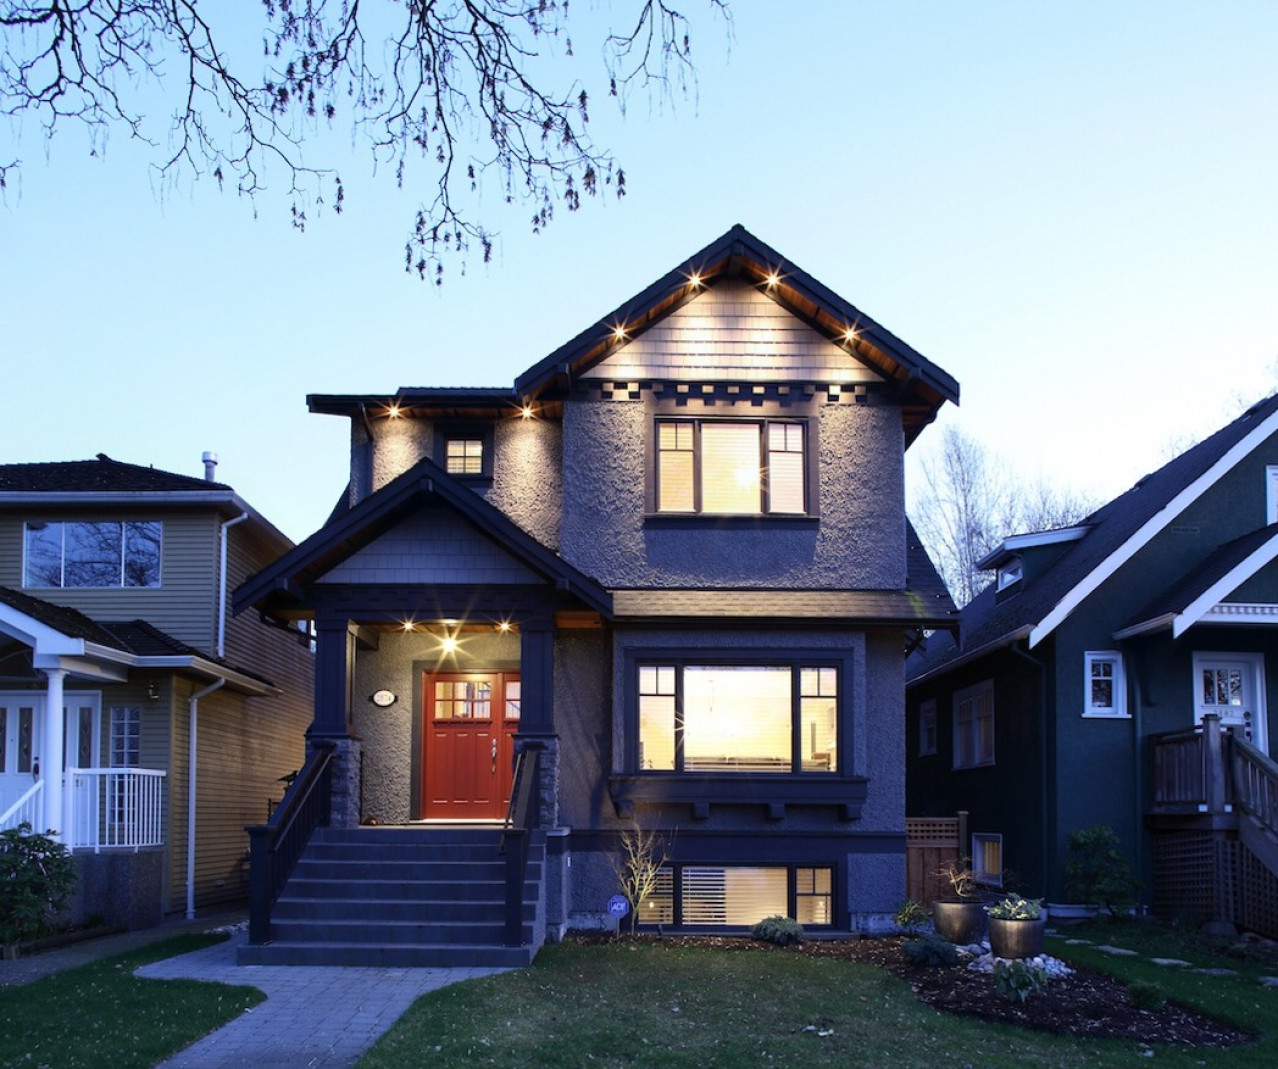 West 11th Avenue, Vancouver Custom Homes